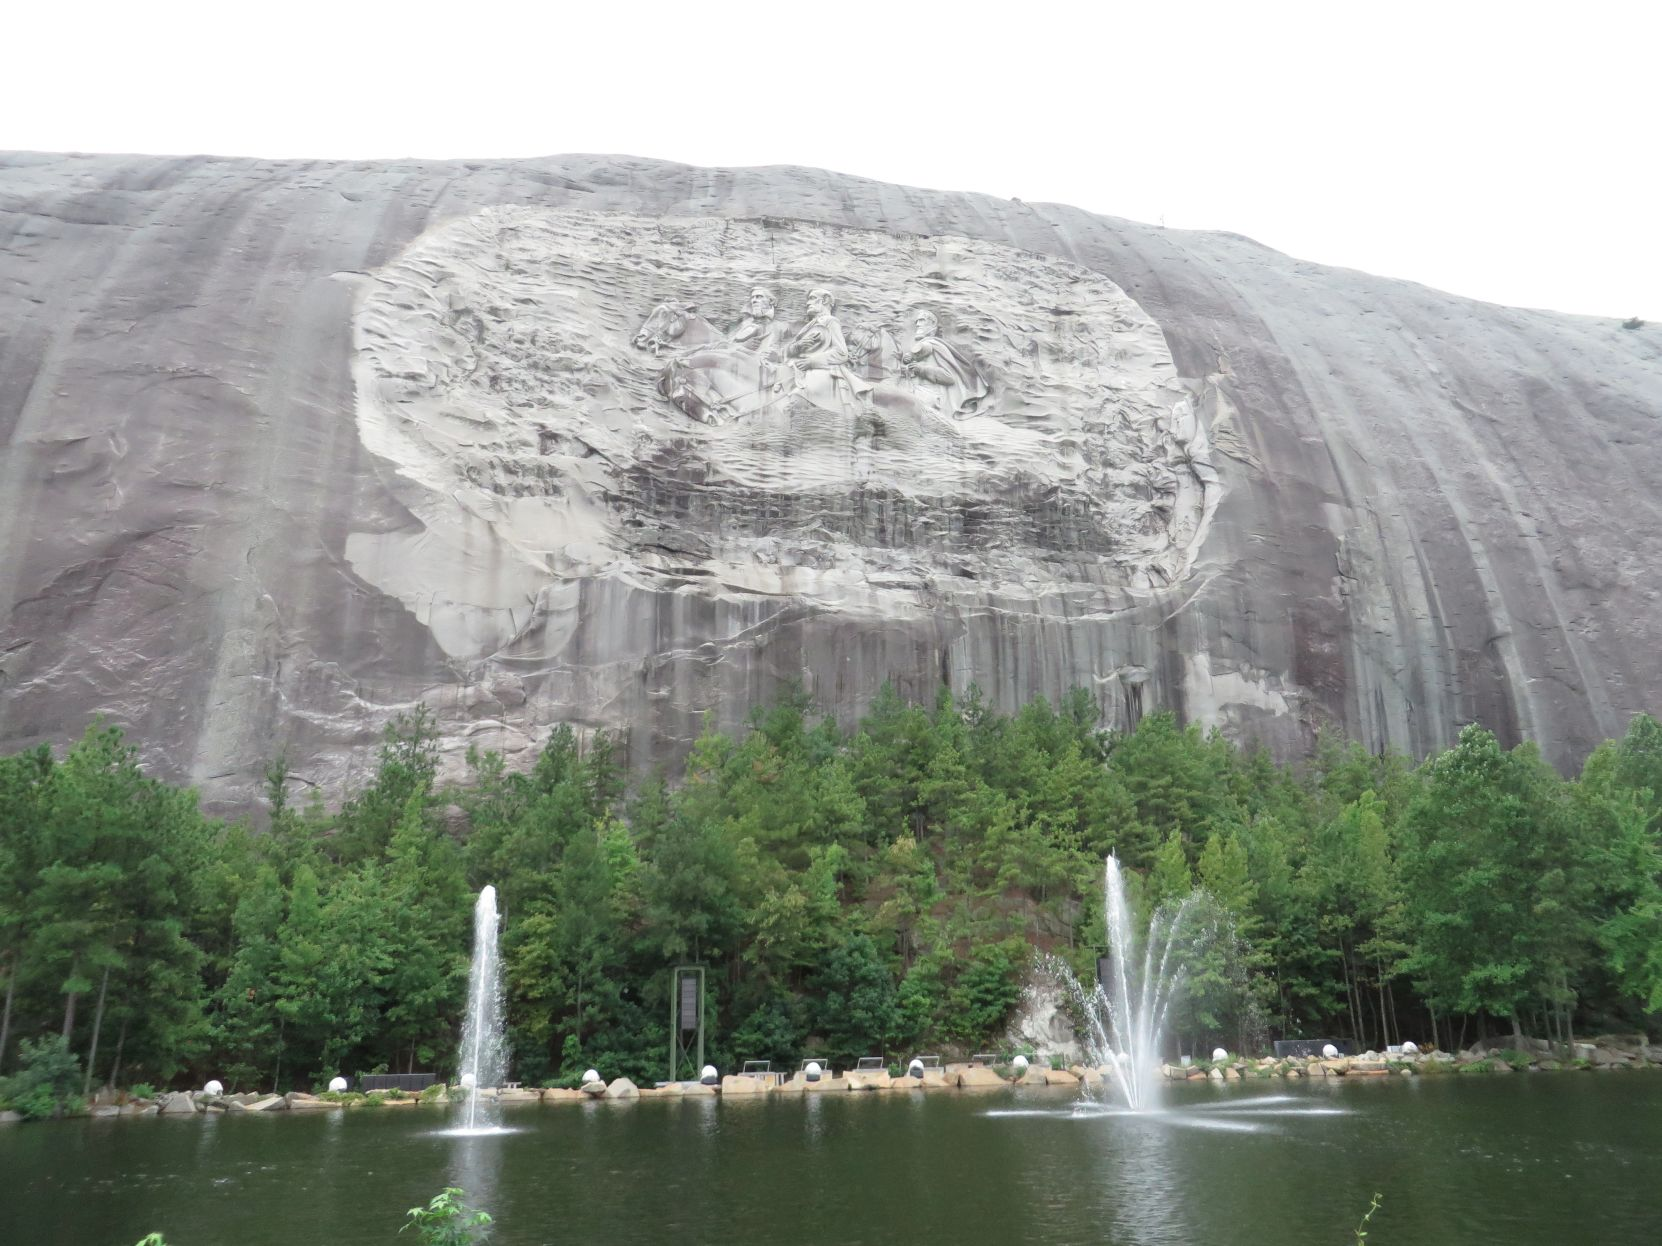 Naacp wants removal of confederate generals from stone mountain